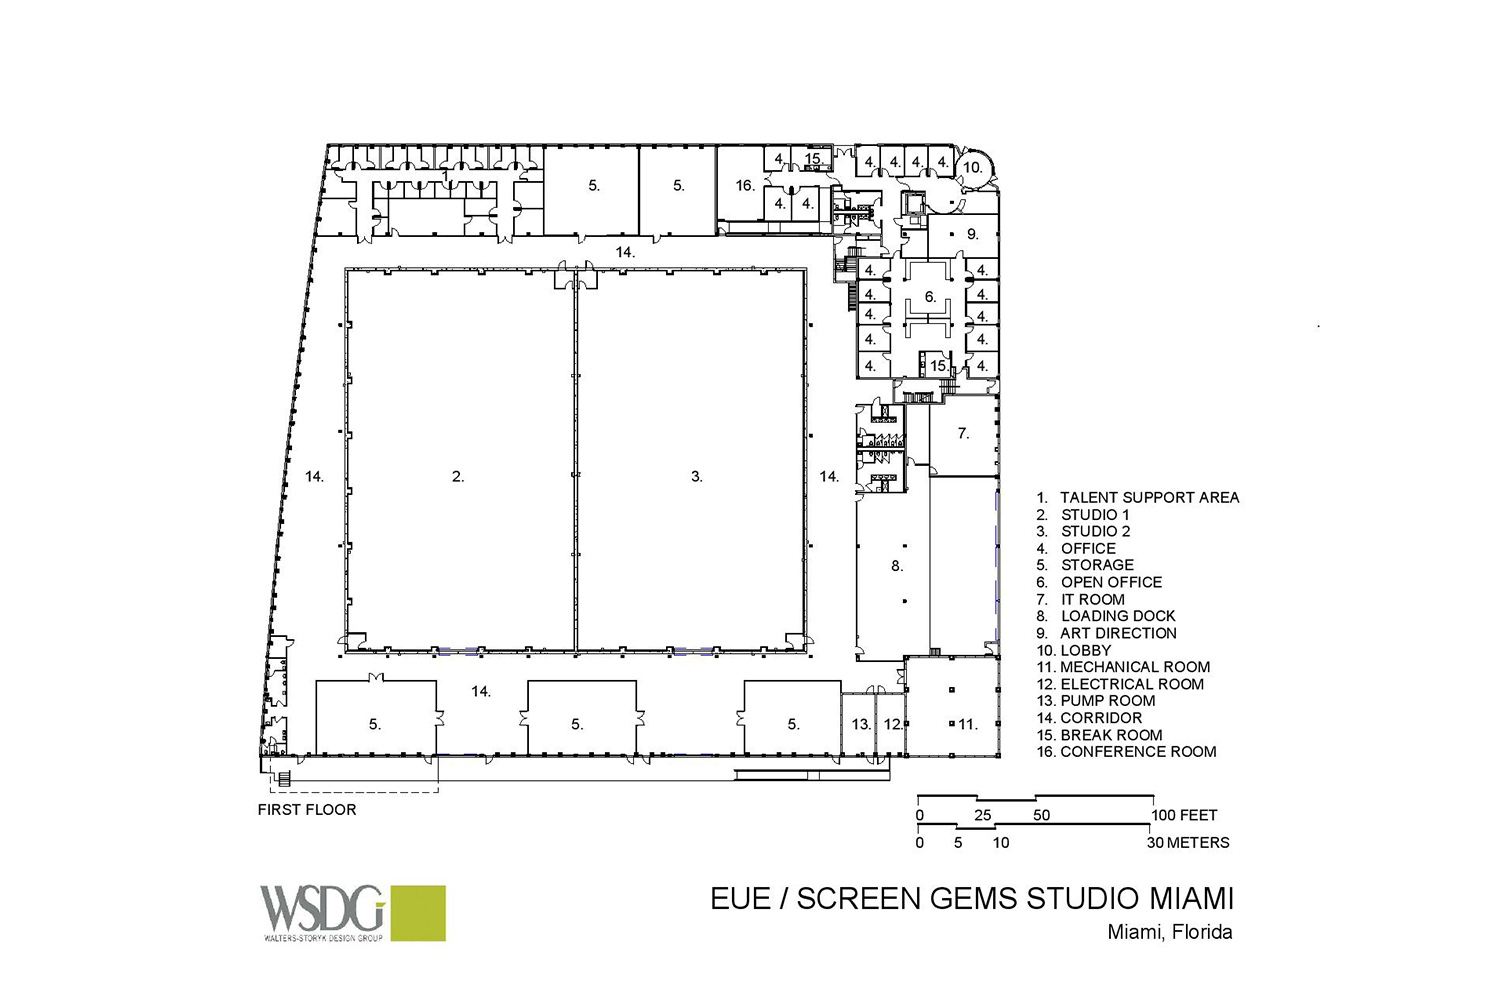 Viacom International/EUE/Screen Gems Studios recently completed construction on an 88,000 sq. ft. studio complex in Miami. WSDG was reached for an intensive feasibility study, cost/benefit analysis, and AV Systems Integration. Presentation Drawing 1.